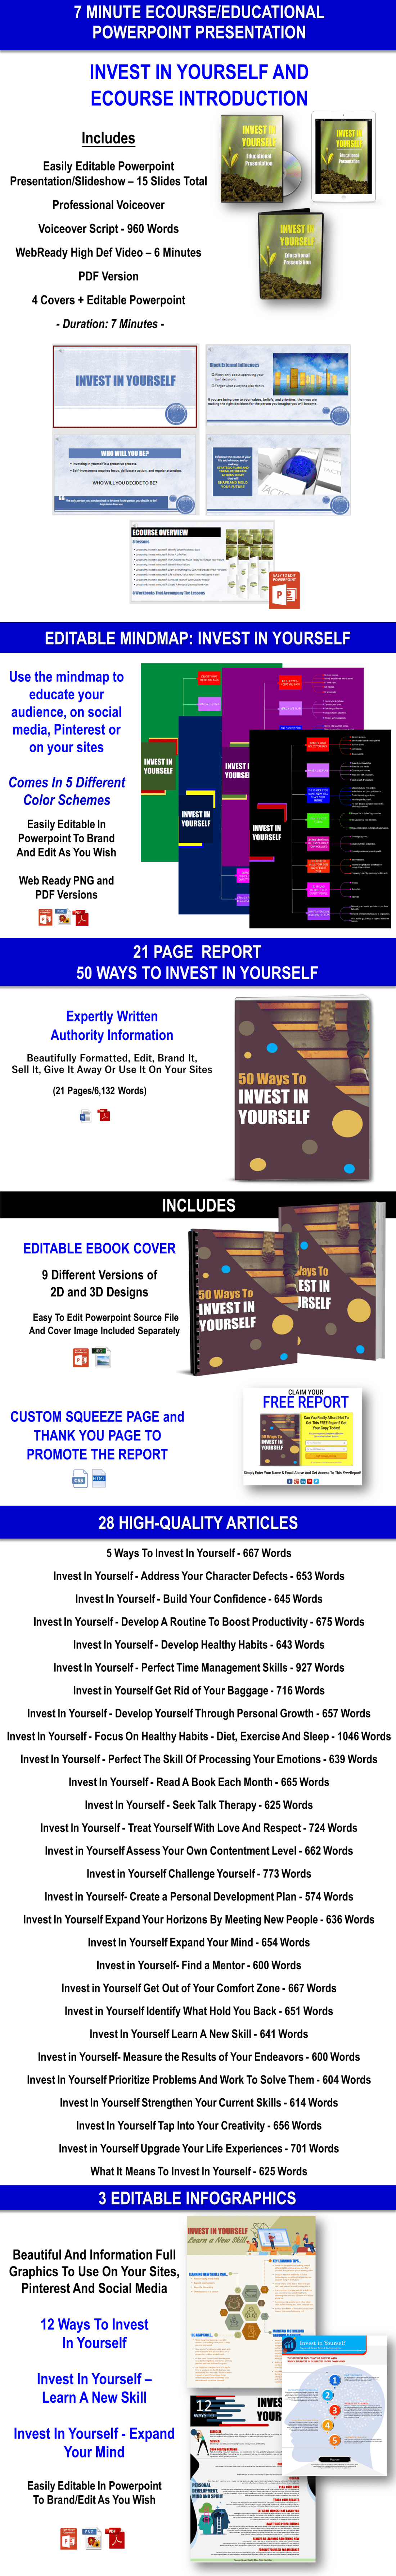 Invest In Yourself Personal Development Content with PLR Rights